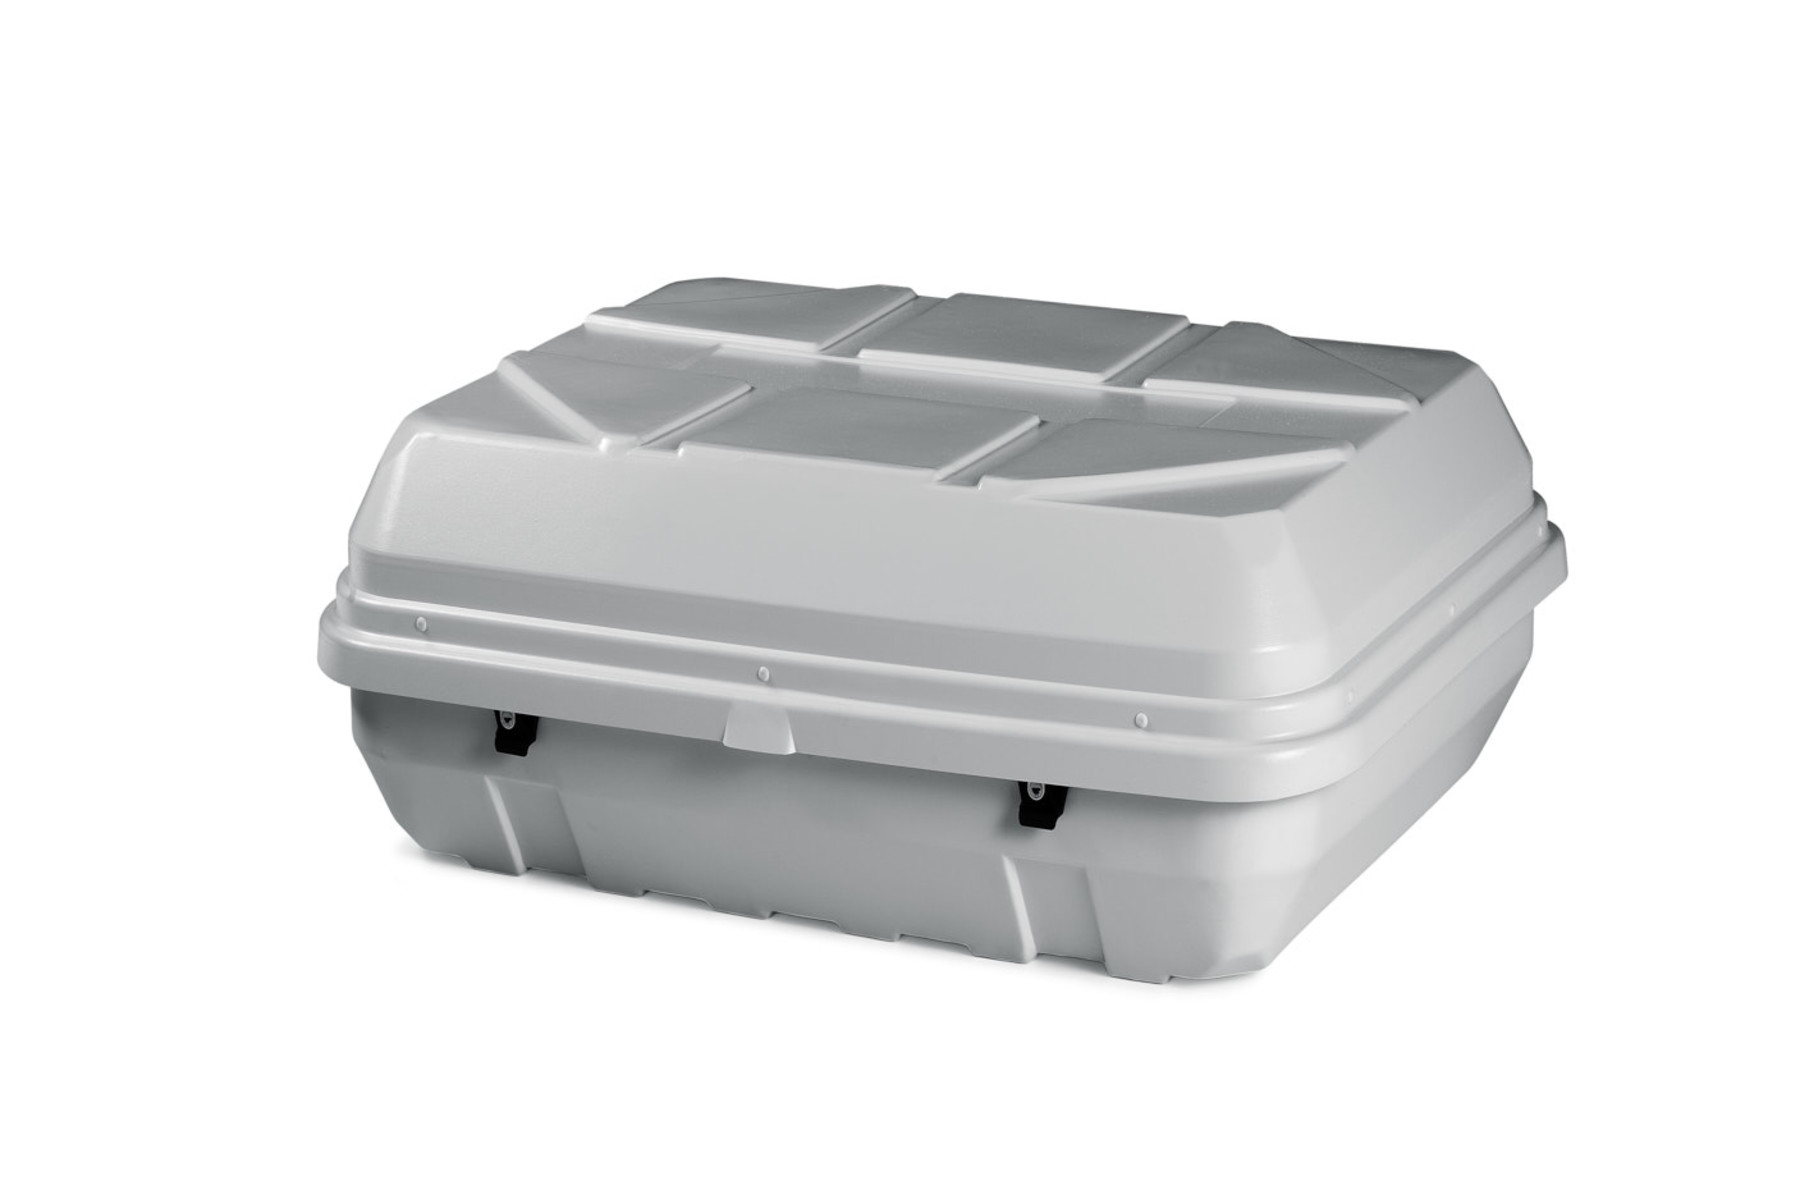 Thule Top Box 130 hero 307609